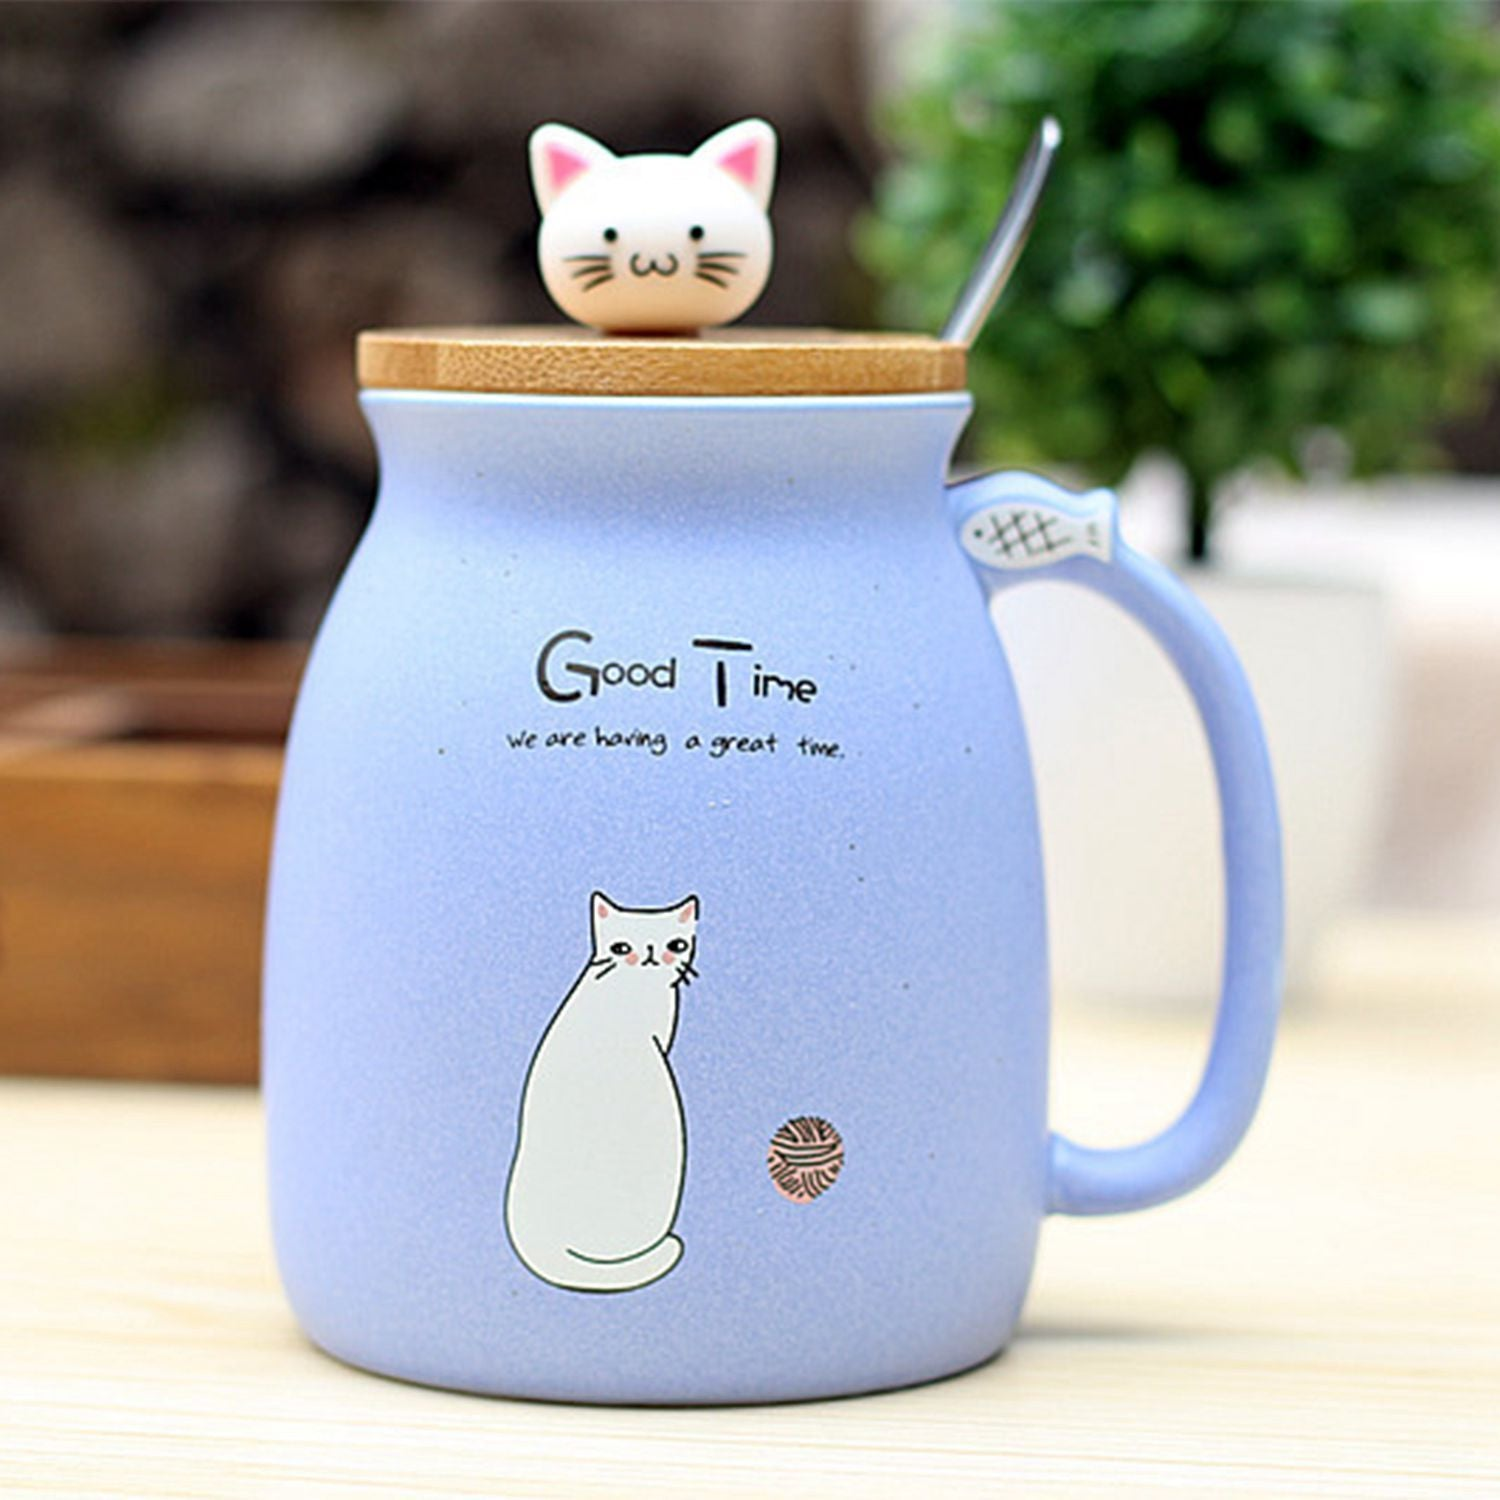 Cute Kitty Kup - petshoppee.com